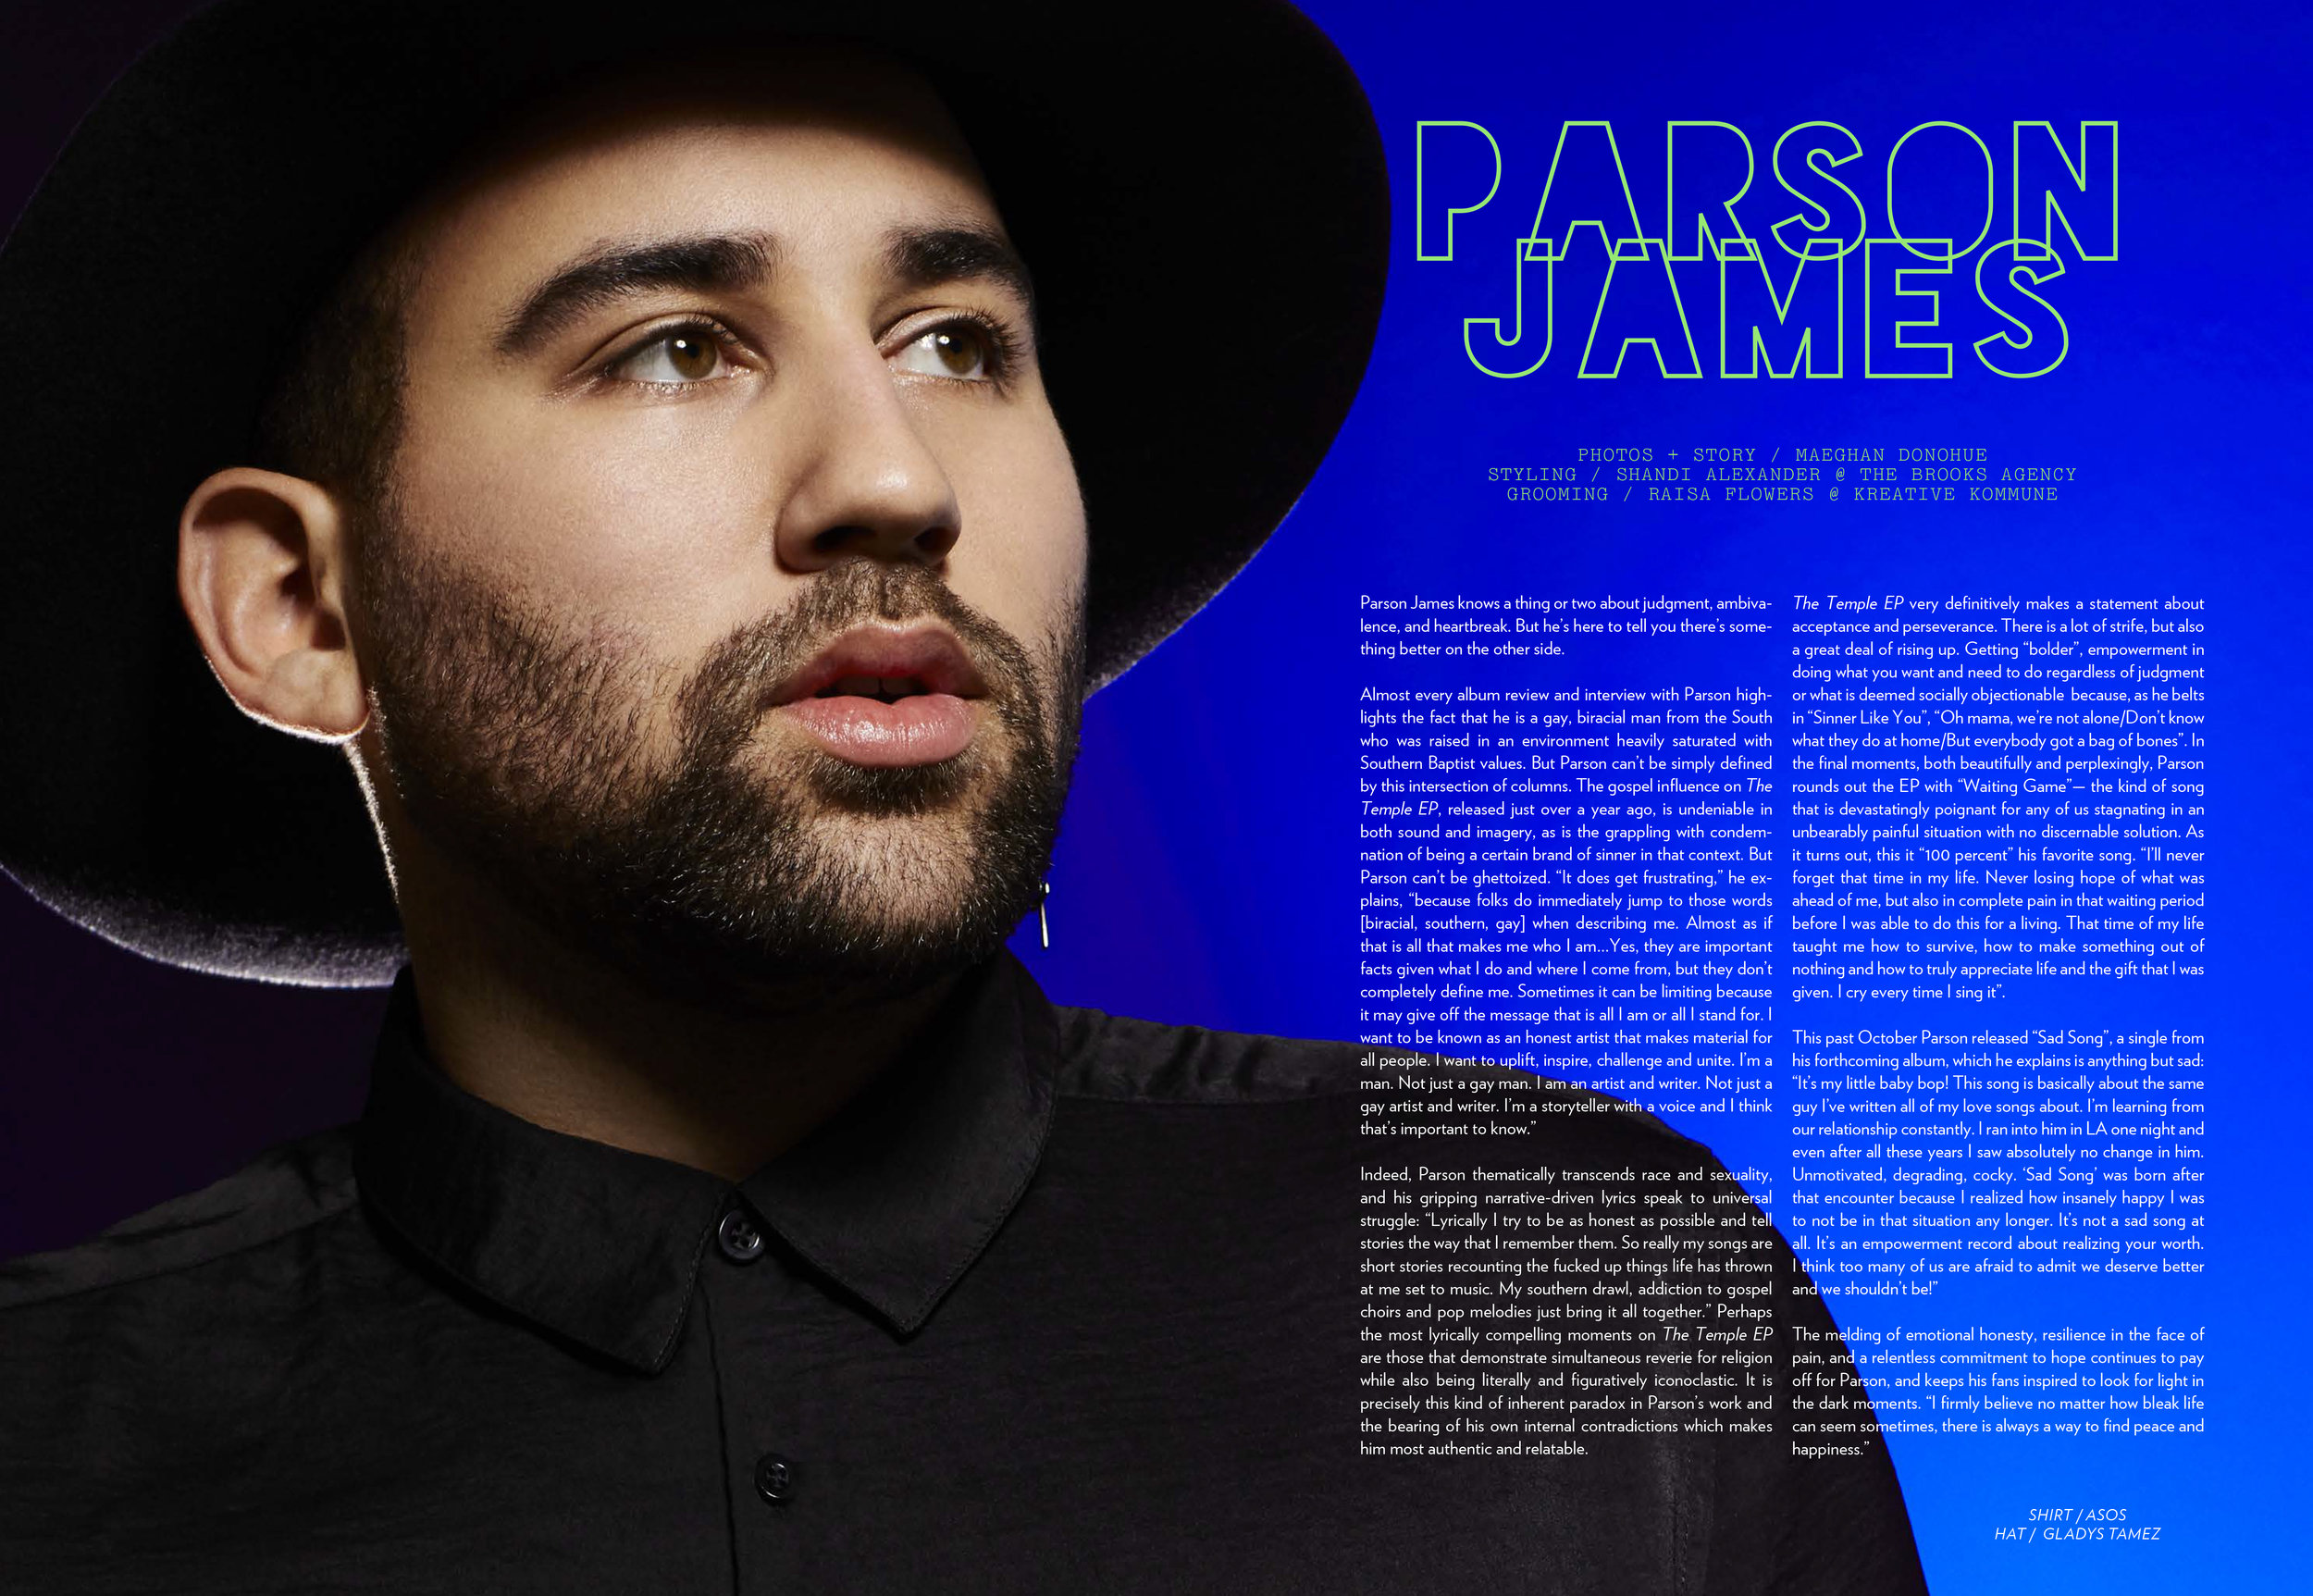 PARSON JAMES x LADYGUNN MAGAZINE